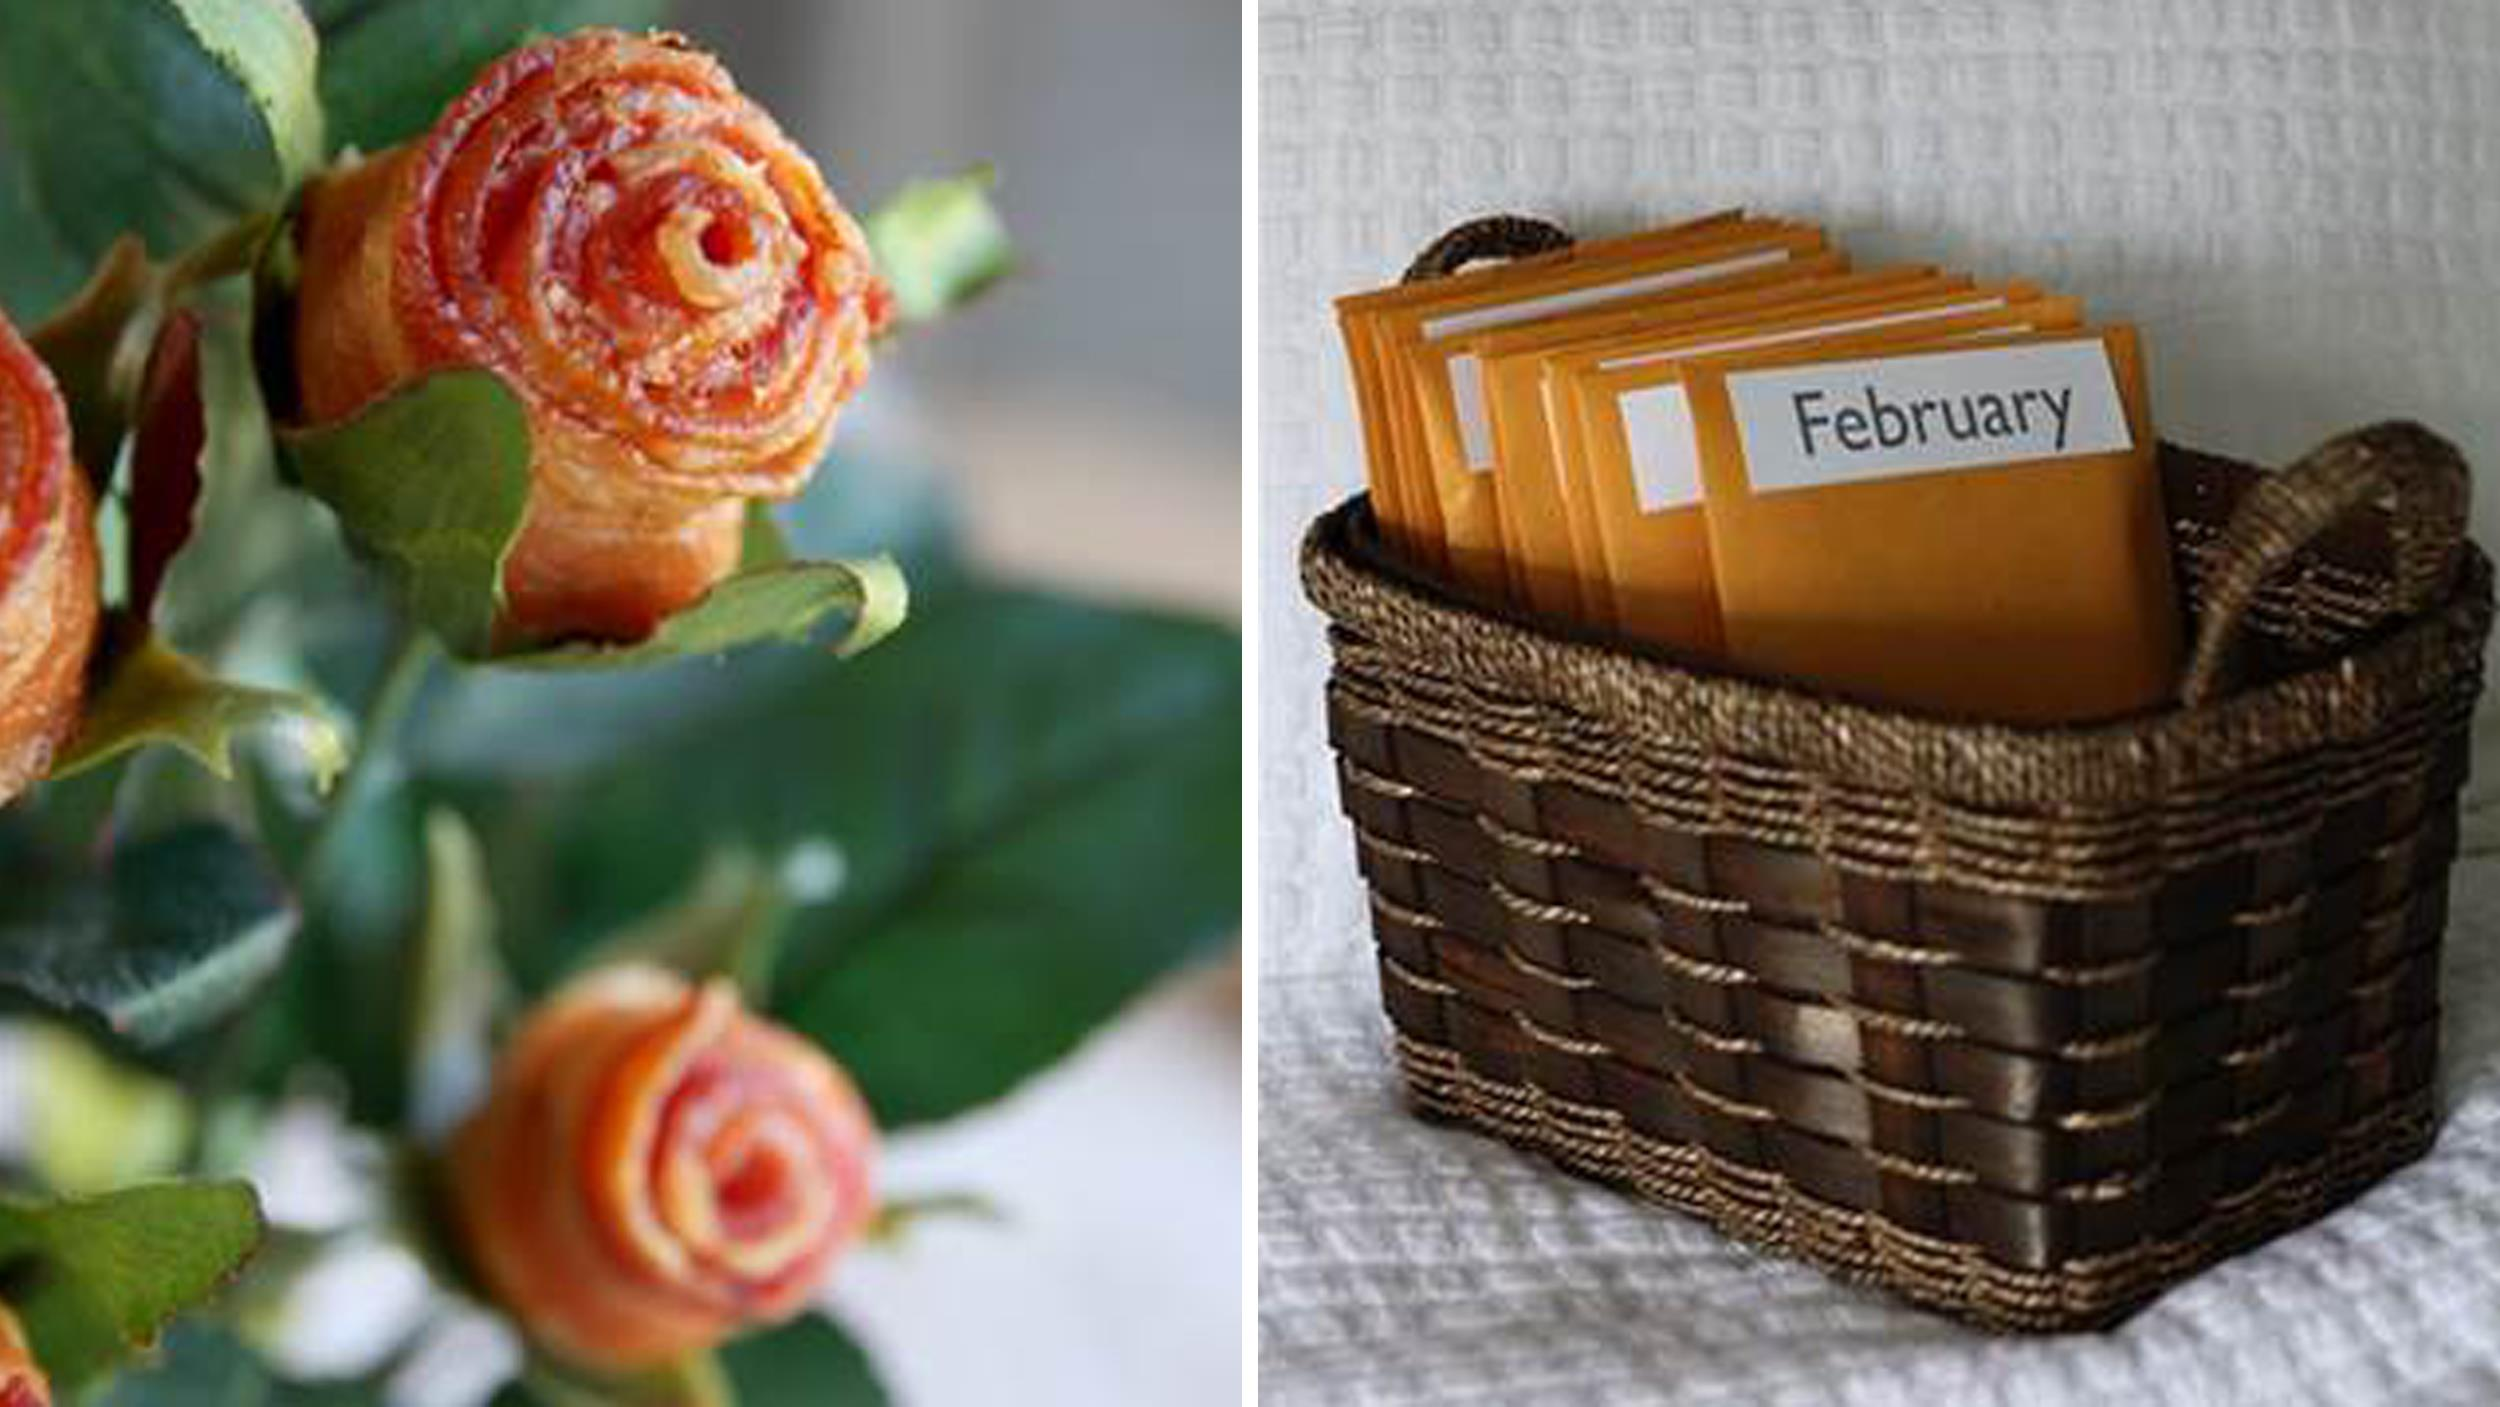 Diy Pinterest Bacon Roses And More Pinterest Inspired Diy Valentine S Day Gifts